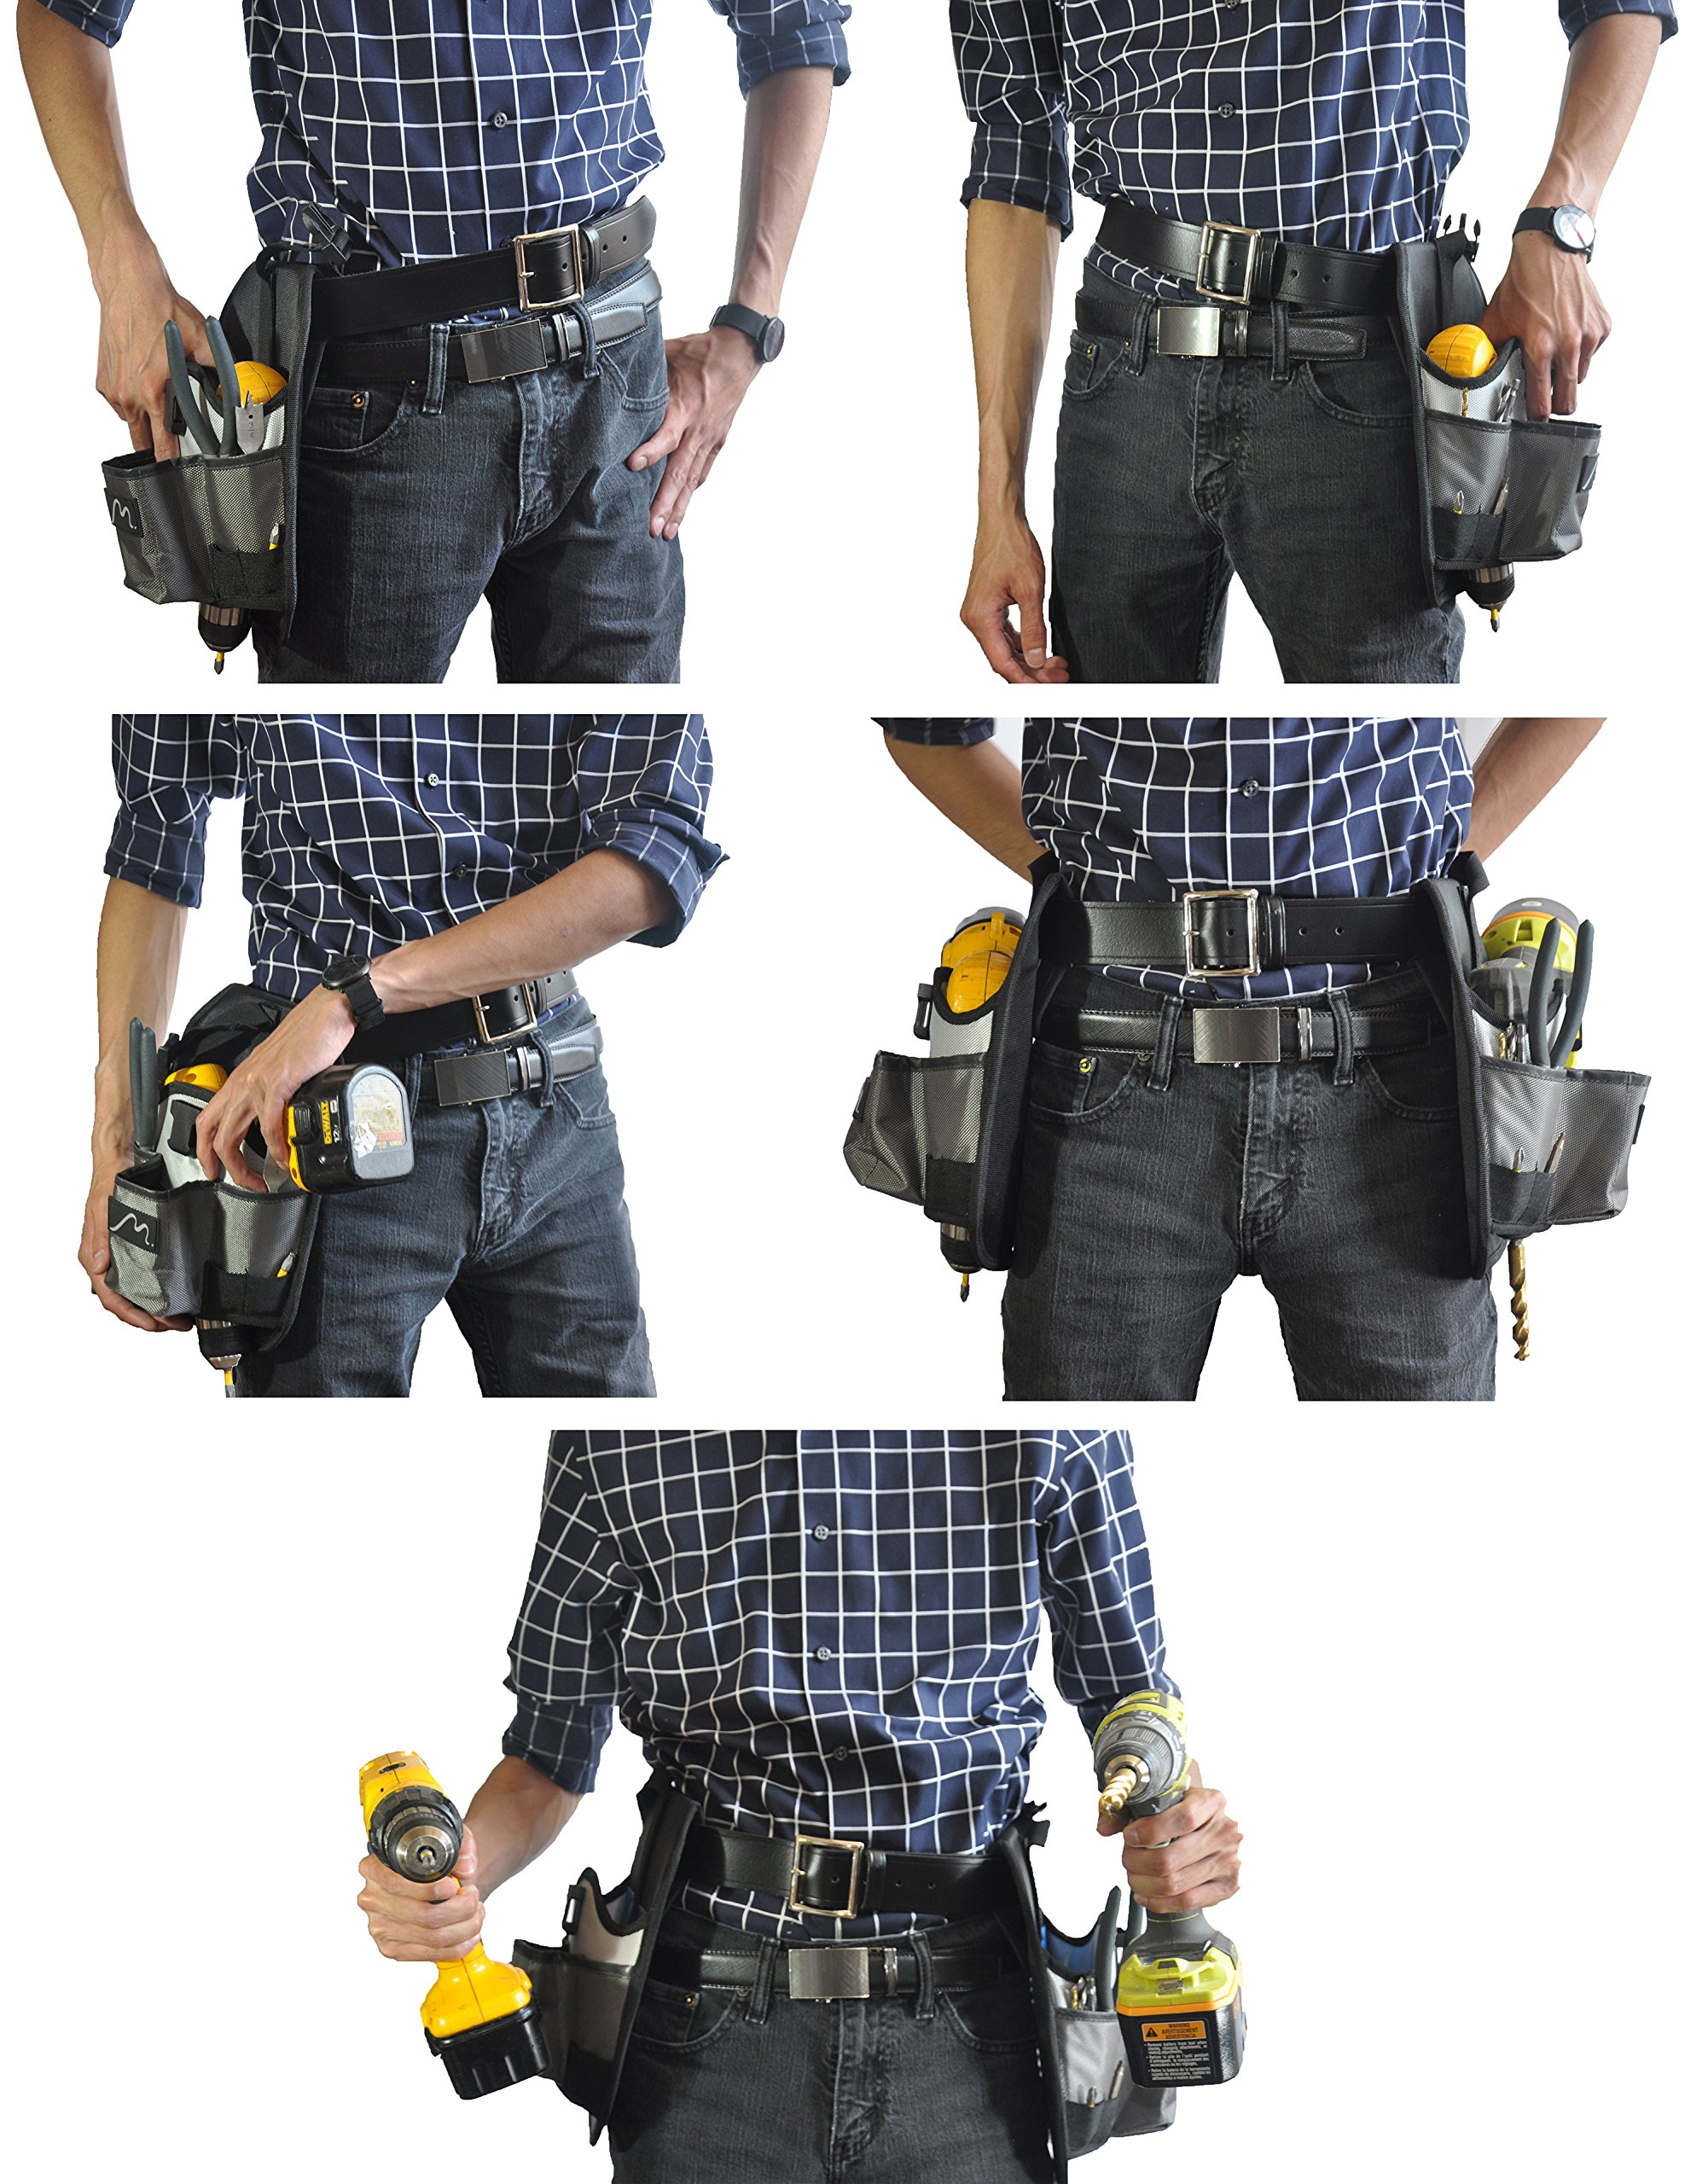 Cordless Drill Holster by Metier Life | Magnetic Organizer Pouches for Drill Bits and Extenders | Large Open Pocket for Screws and Accessories | Left Right Handed Use (Grey) by Metier Life (Image #4)